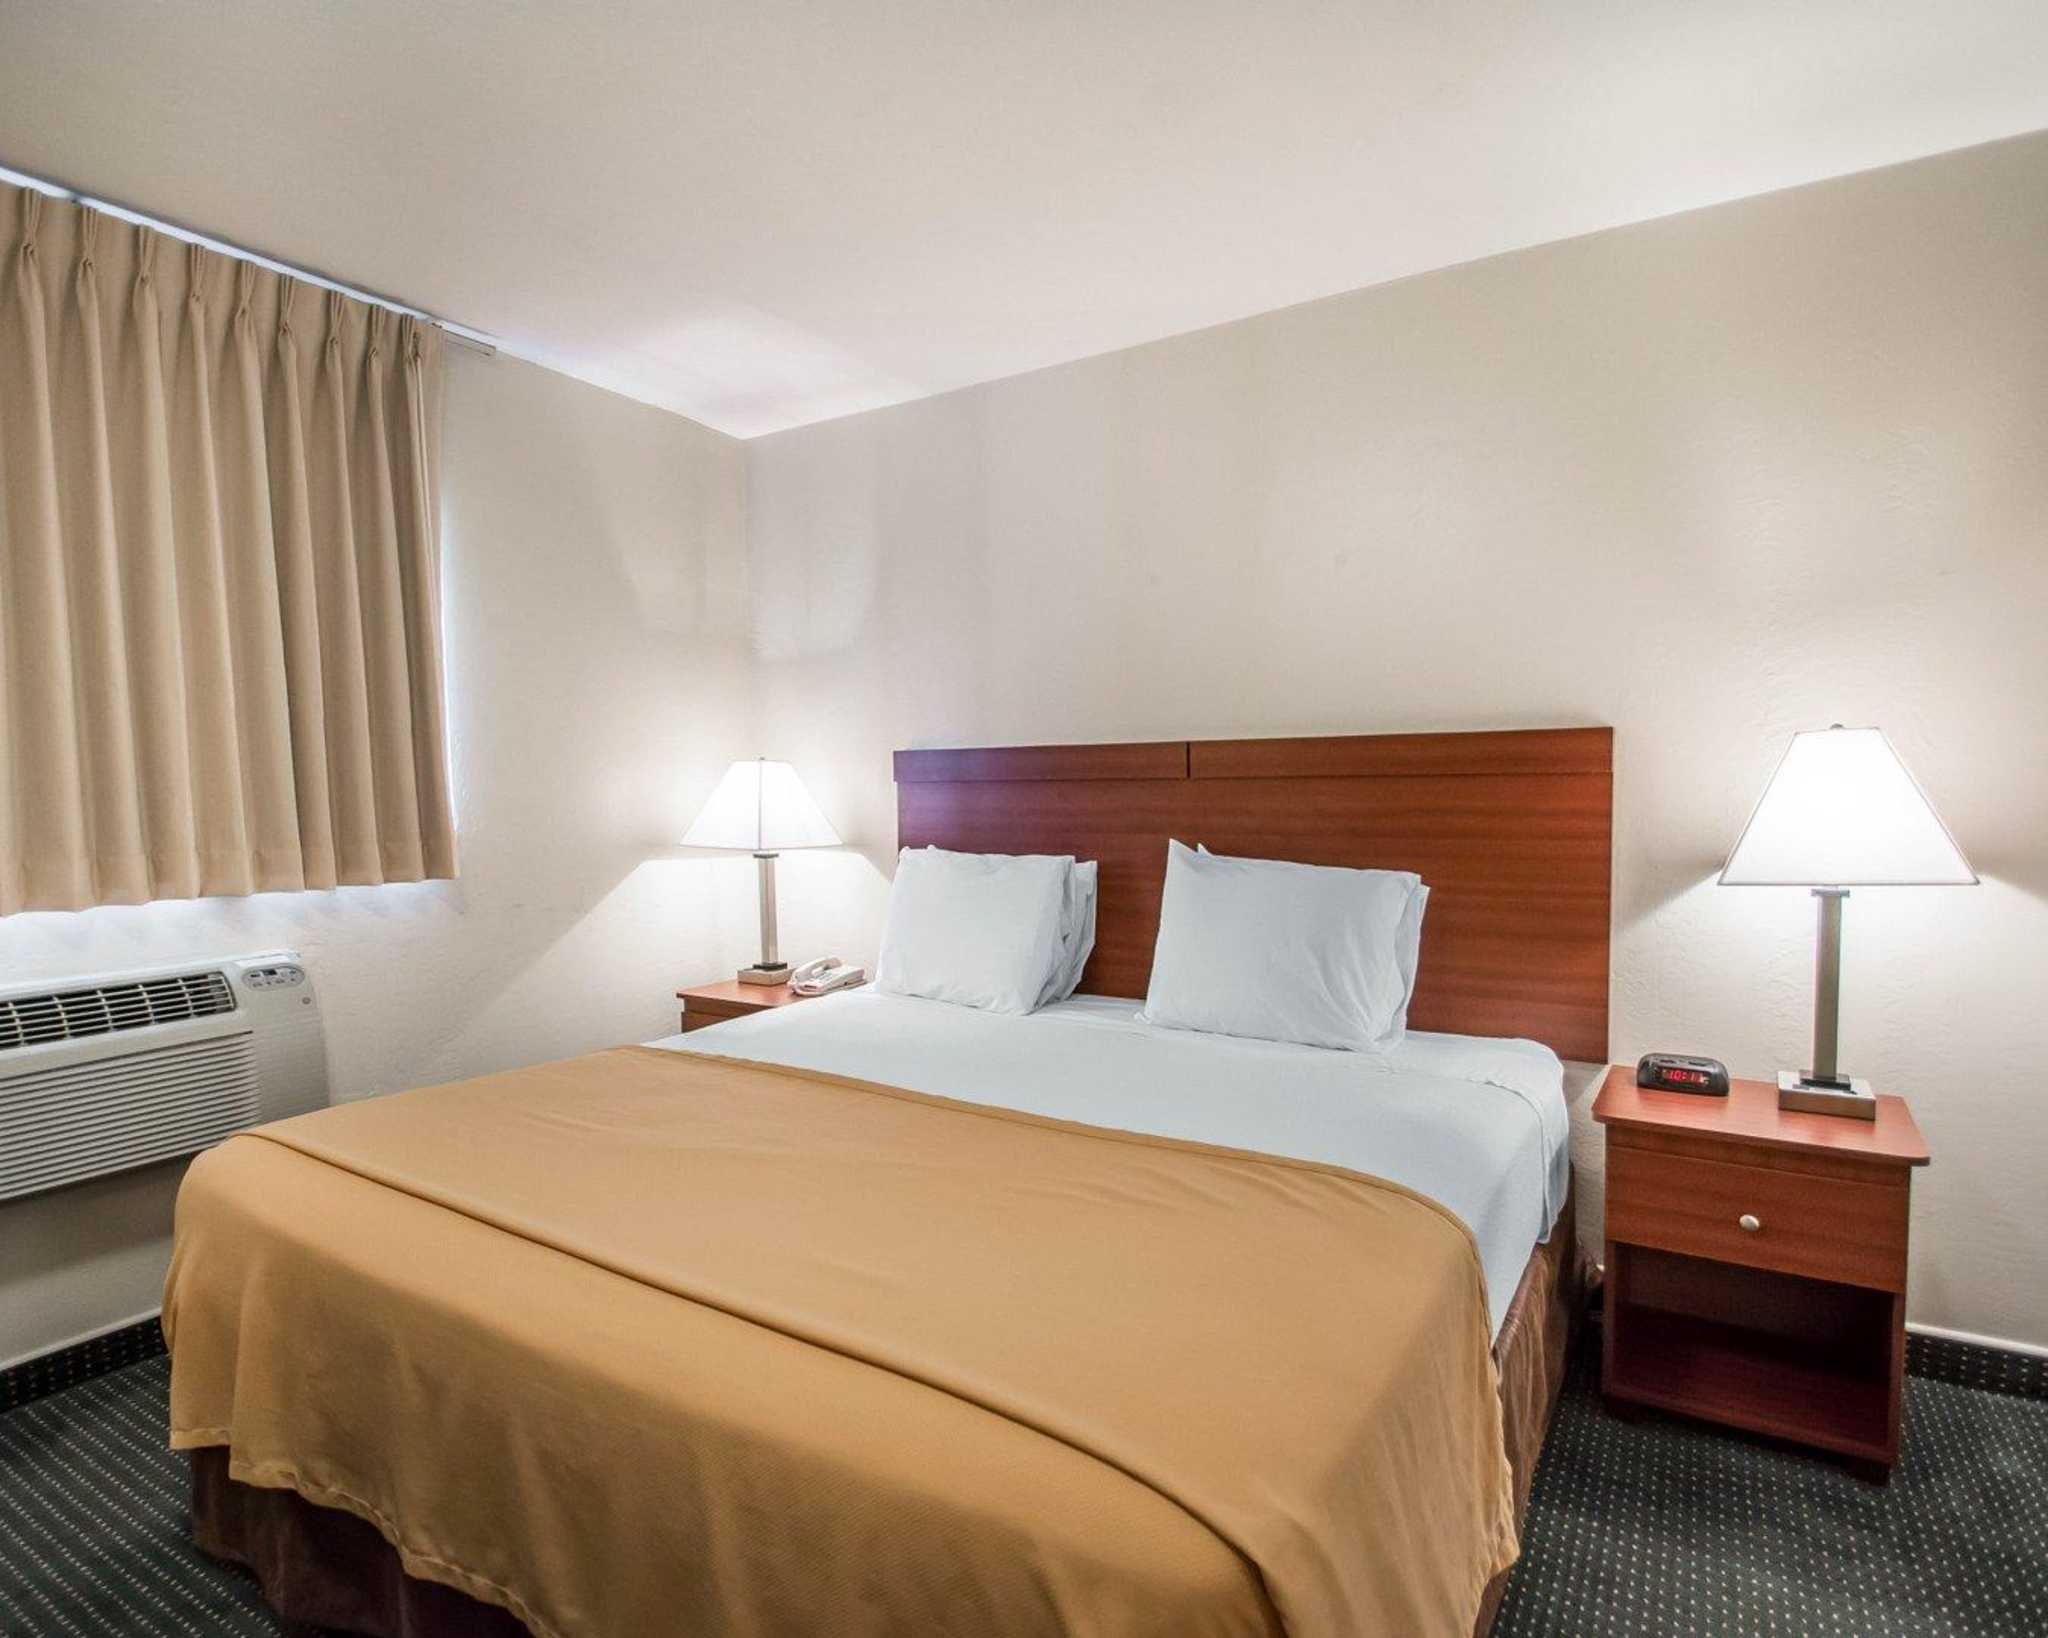 Suburban Extended Stay Hotel image 25